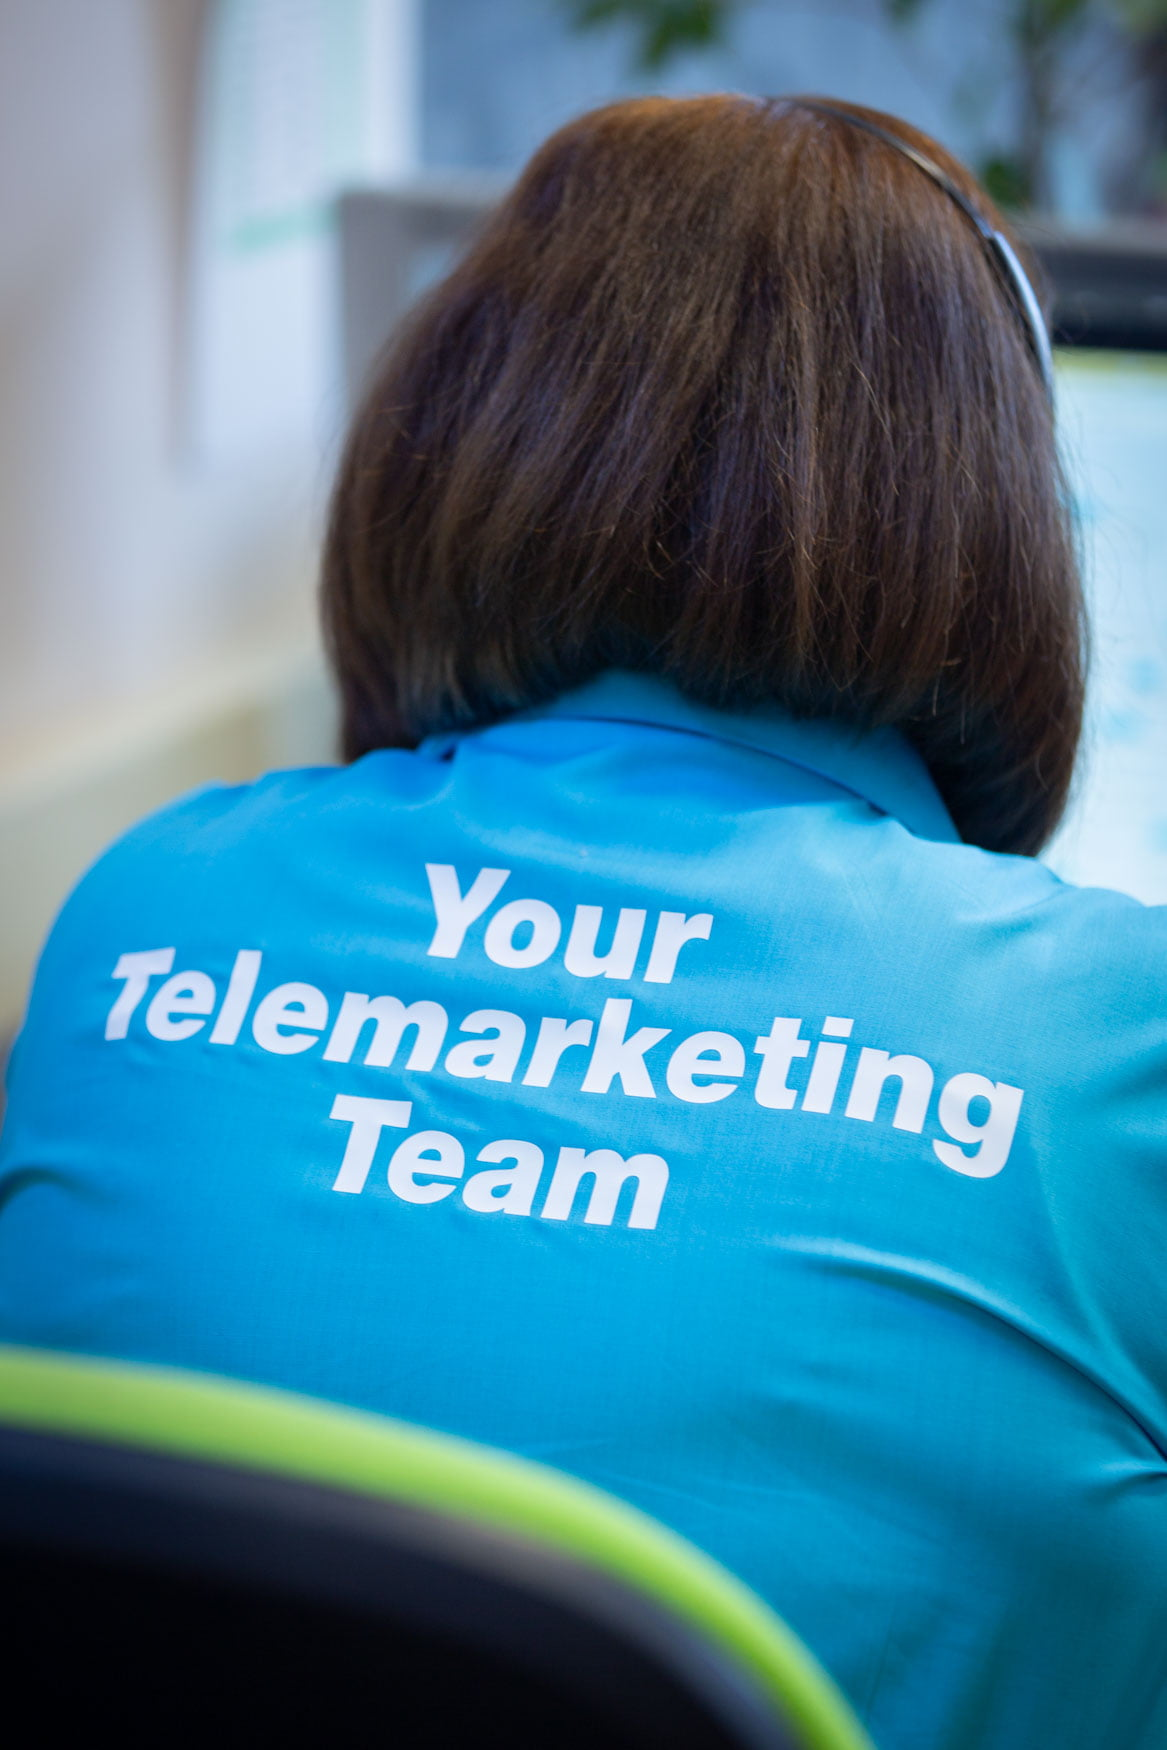 Your Telemarketing Team